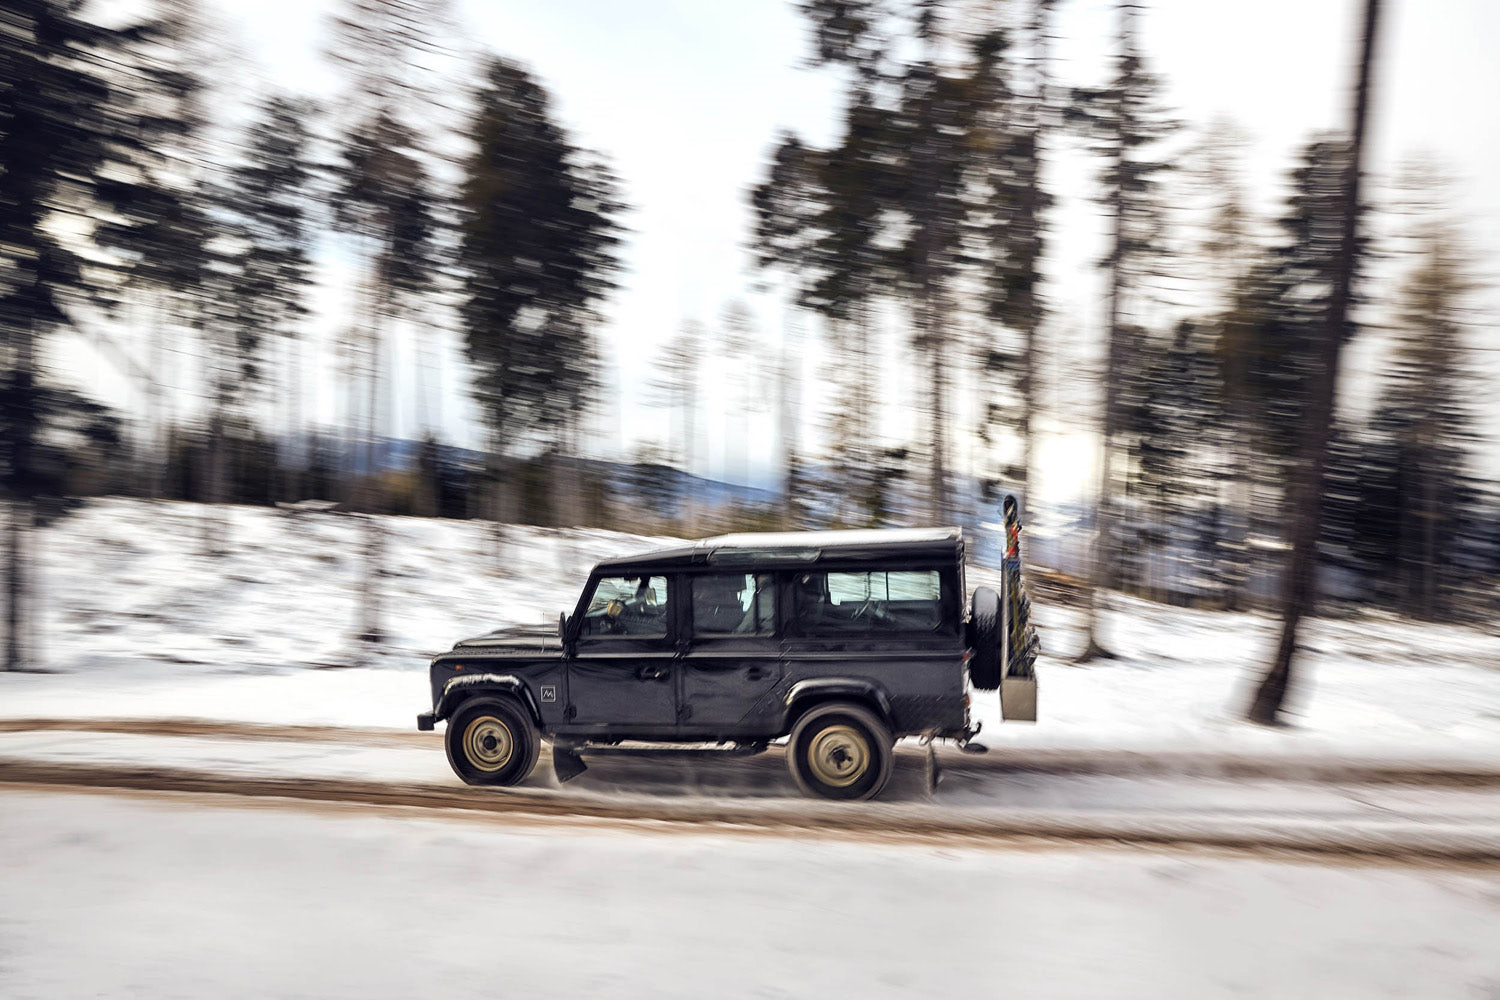 Landrover 3 by Marc WITTKOWSKI